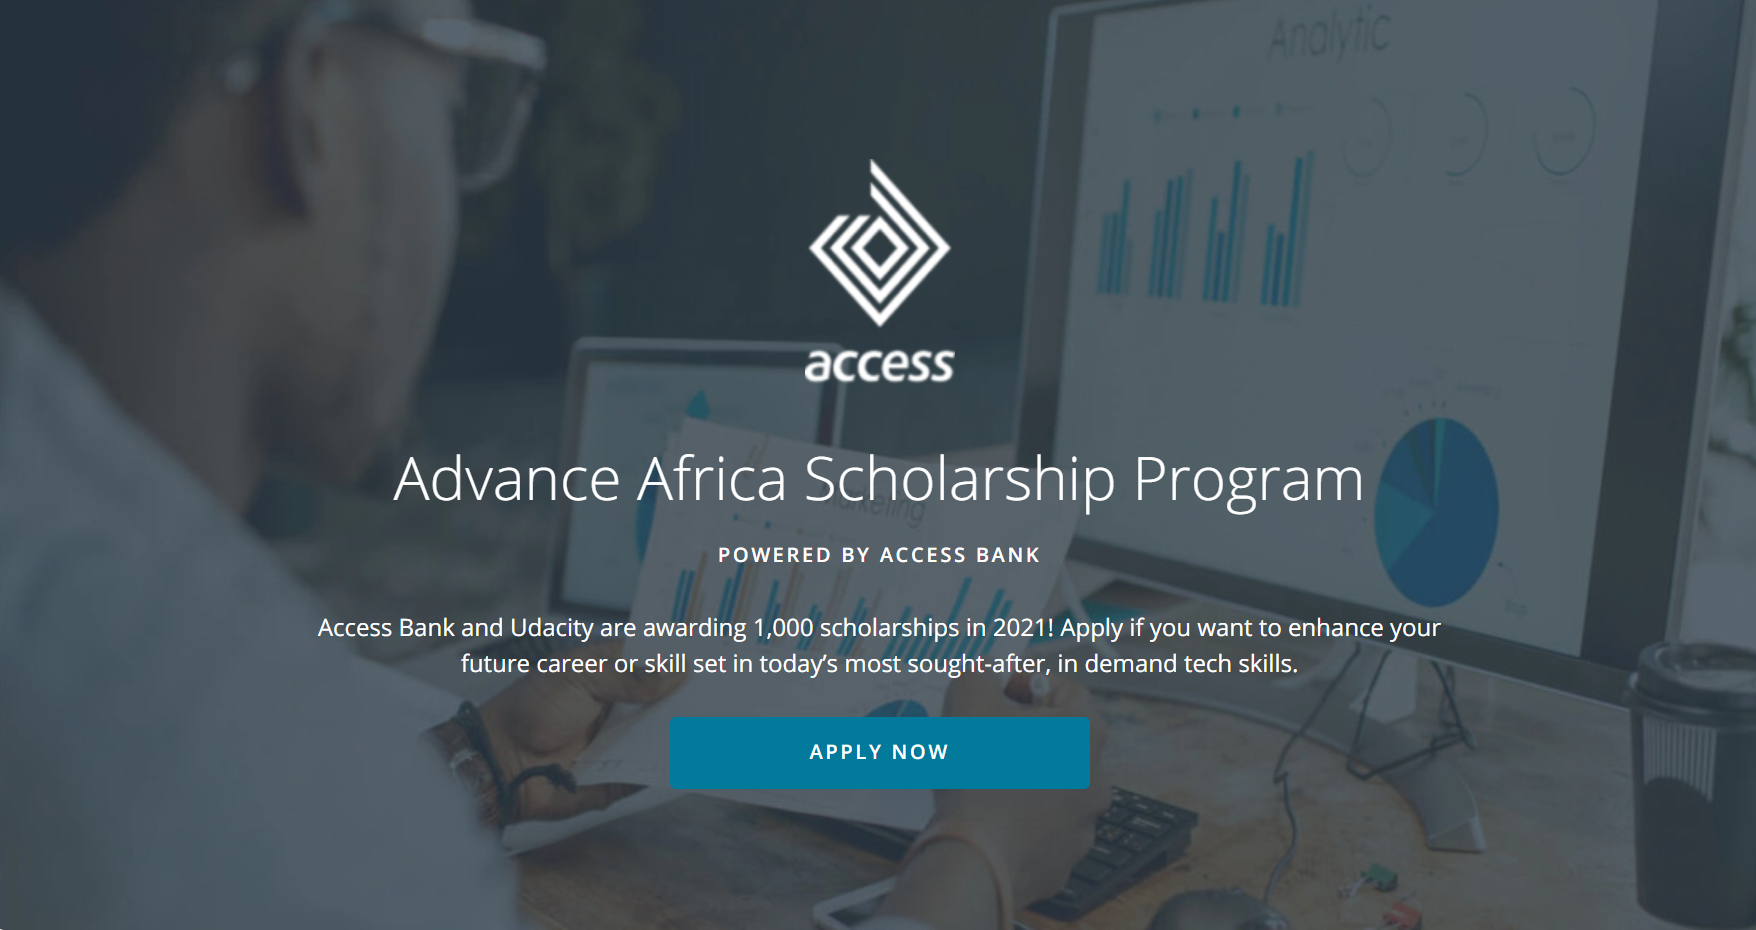 Advance Africa Scholarship Program – 1,000 Available Scholarships for Young Africans